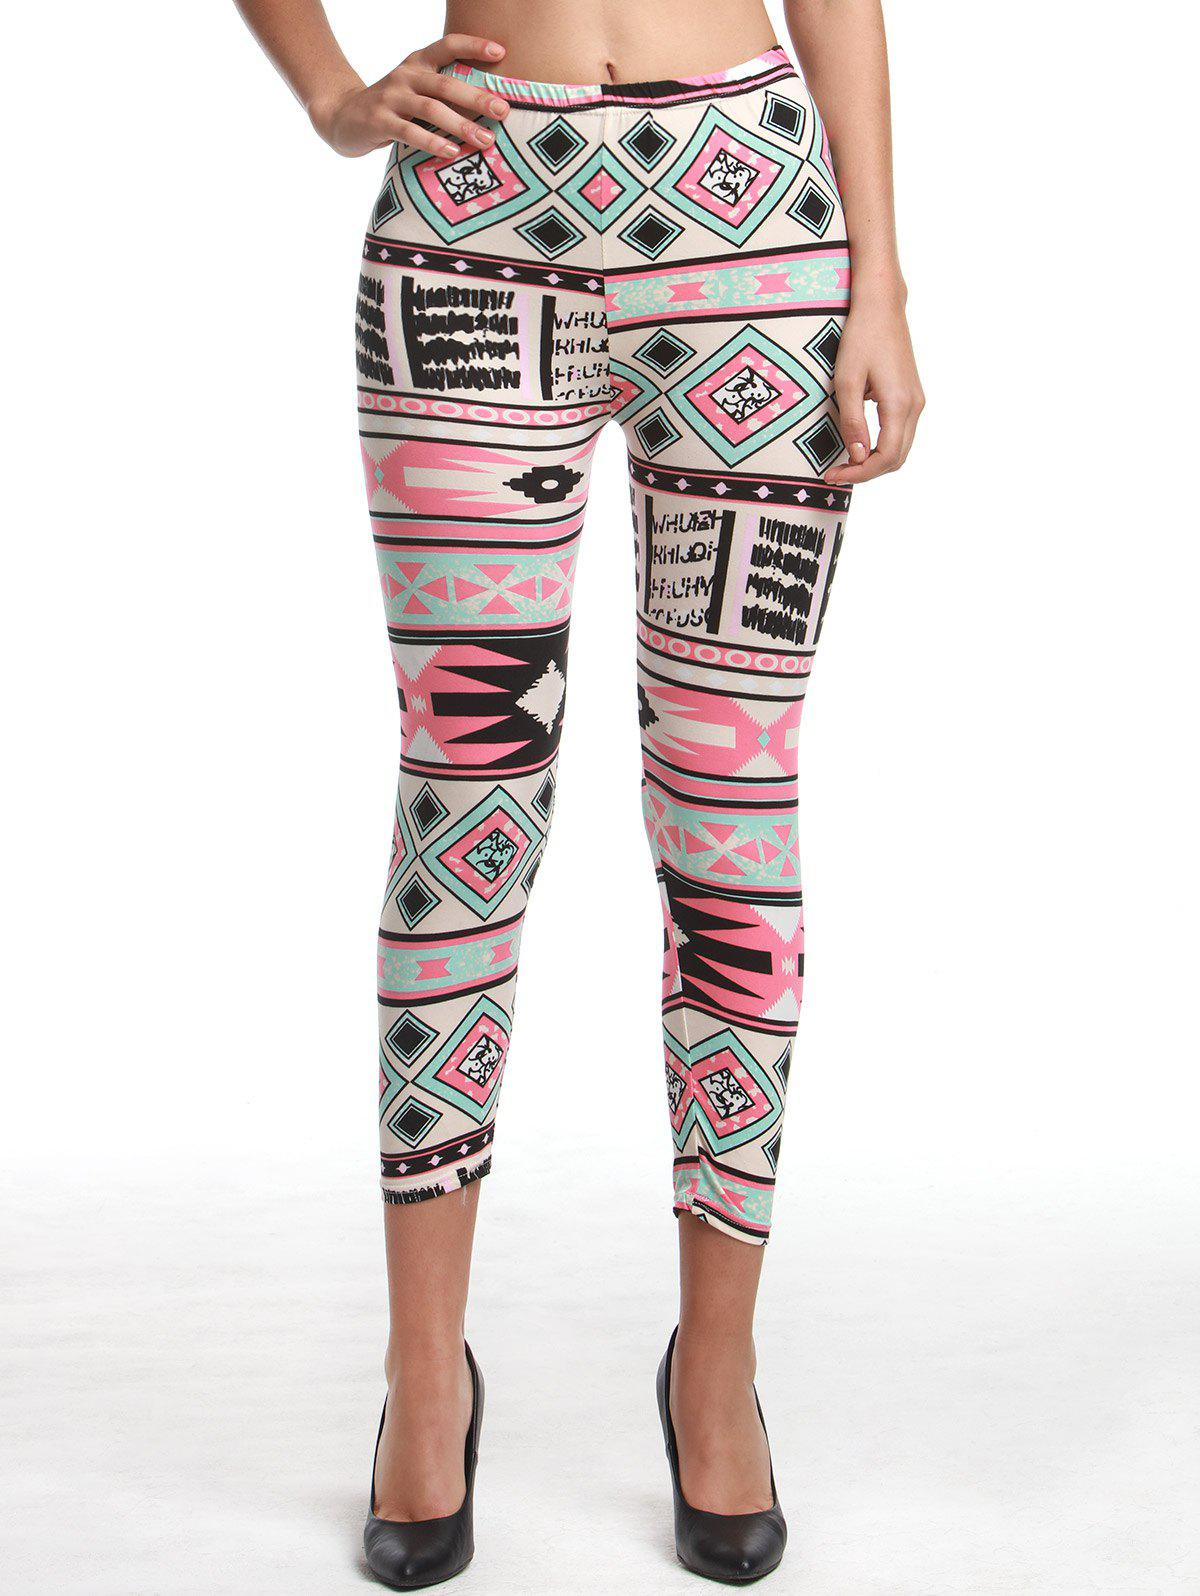 Chic Womens High Waist Geometrical Print Hit Color Capri LeggingsWOMEN<br><br>Size: ONE SIZE(FIT SIZE XS TO M); Color: COLORMIX; Style: Fashion; Material: Polyester; Waist Type: High; Pattern Type: Print; Weight: 0.136kg; Package Contents: 1 x Leggings;